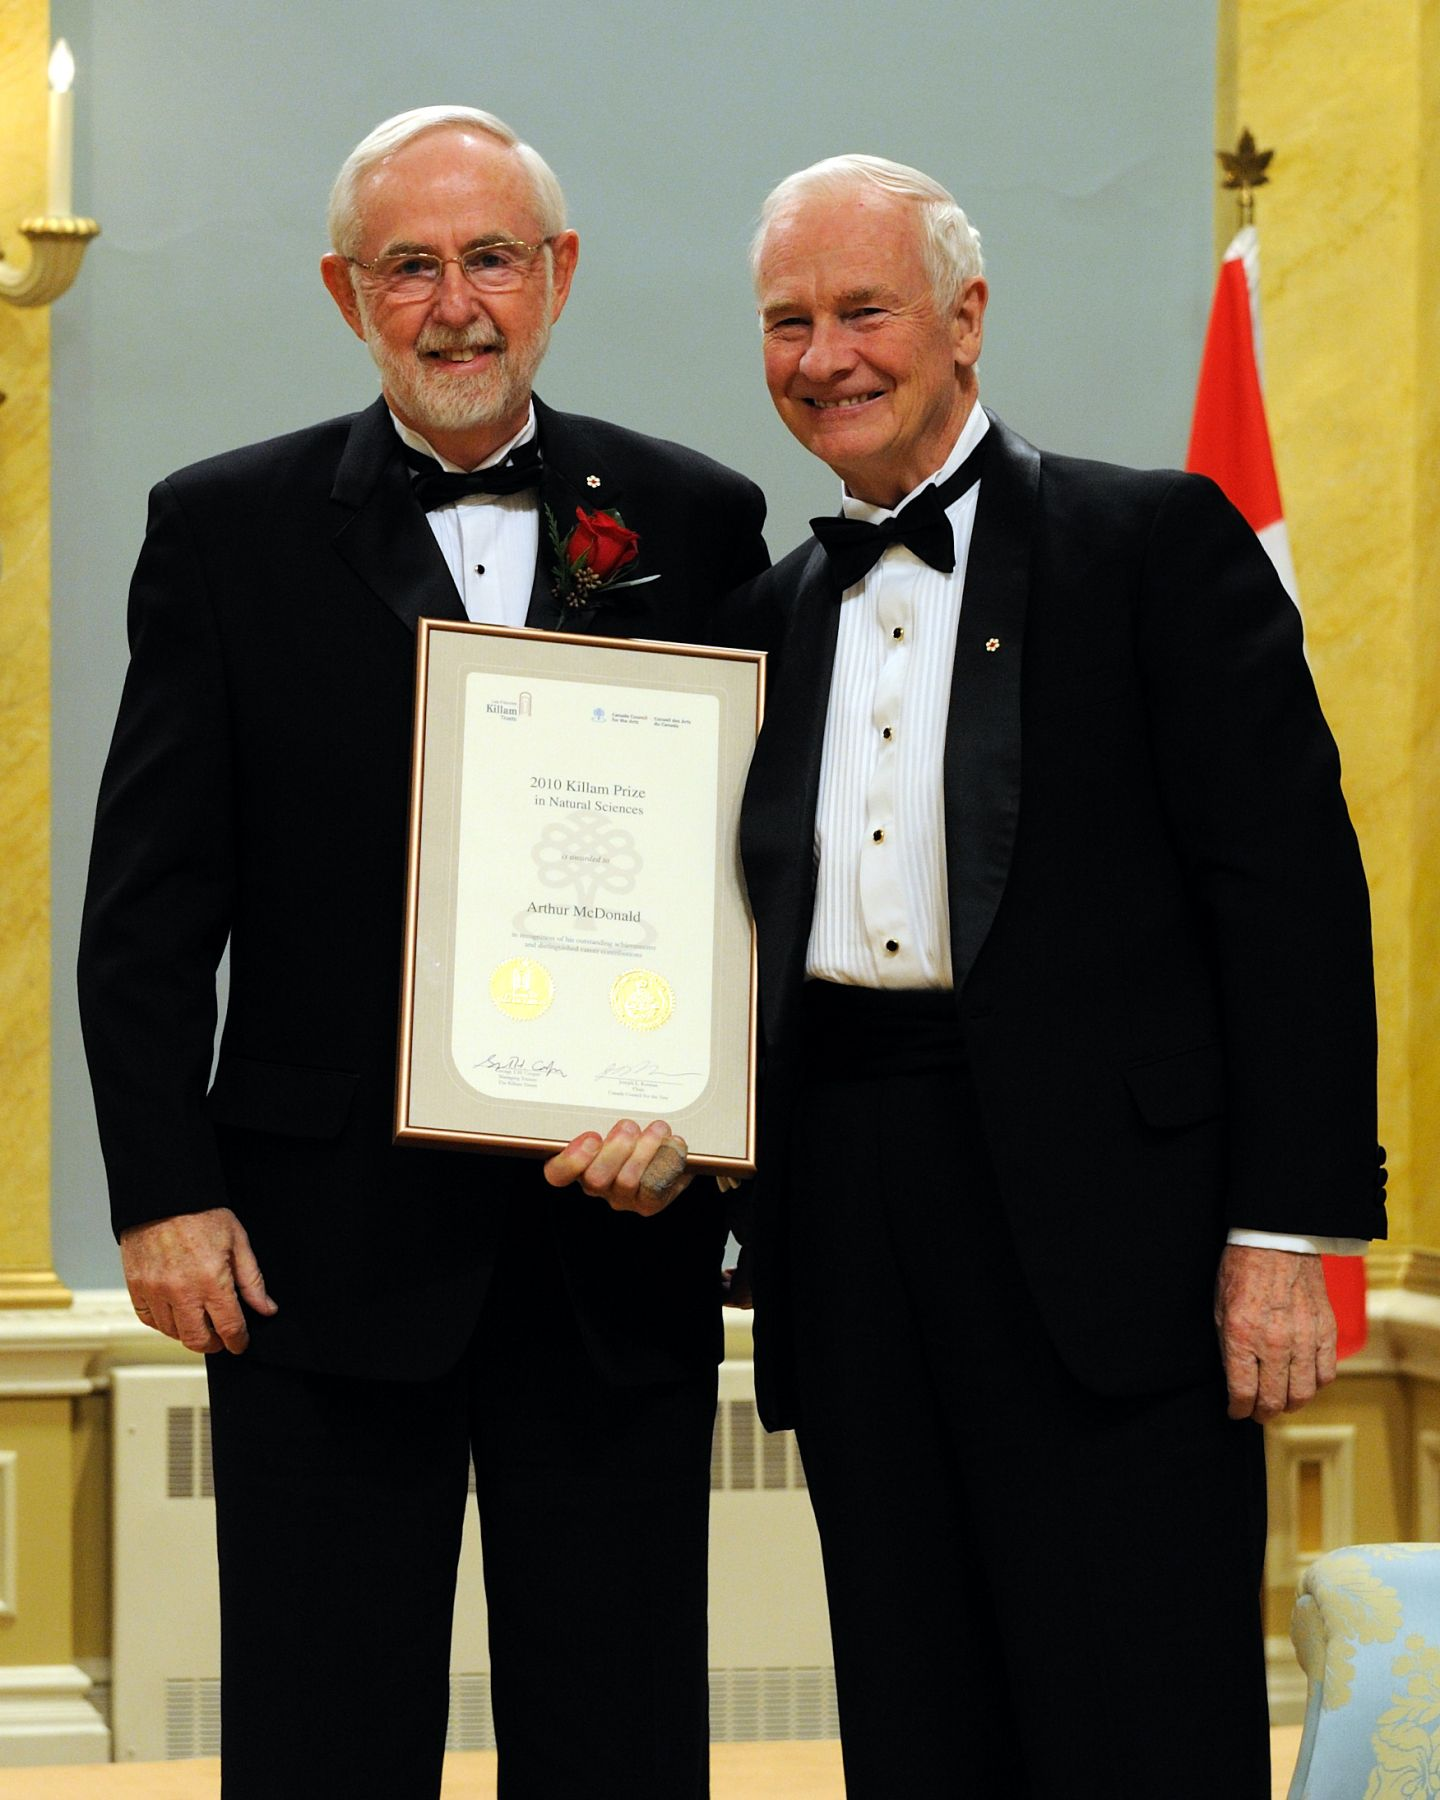 Dr. Arthur McDonald's achievements in the areas of nuclear and particle physics span more than four decades. For the past 20 years, he has been the scientific and operational leader of the Sudbury Neutrino Observatory (SNO) project, a major experiment which has provided revolutionary insight into the properties of neutrinos and energy generation in the sun's core.